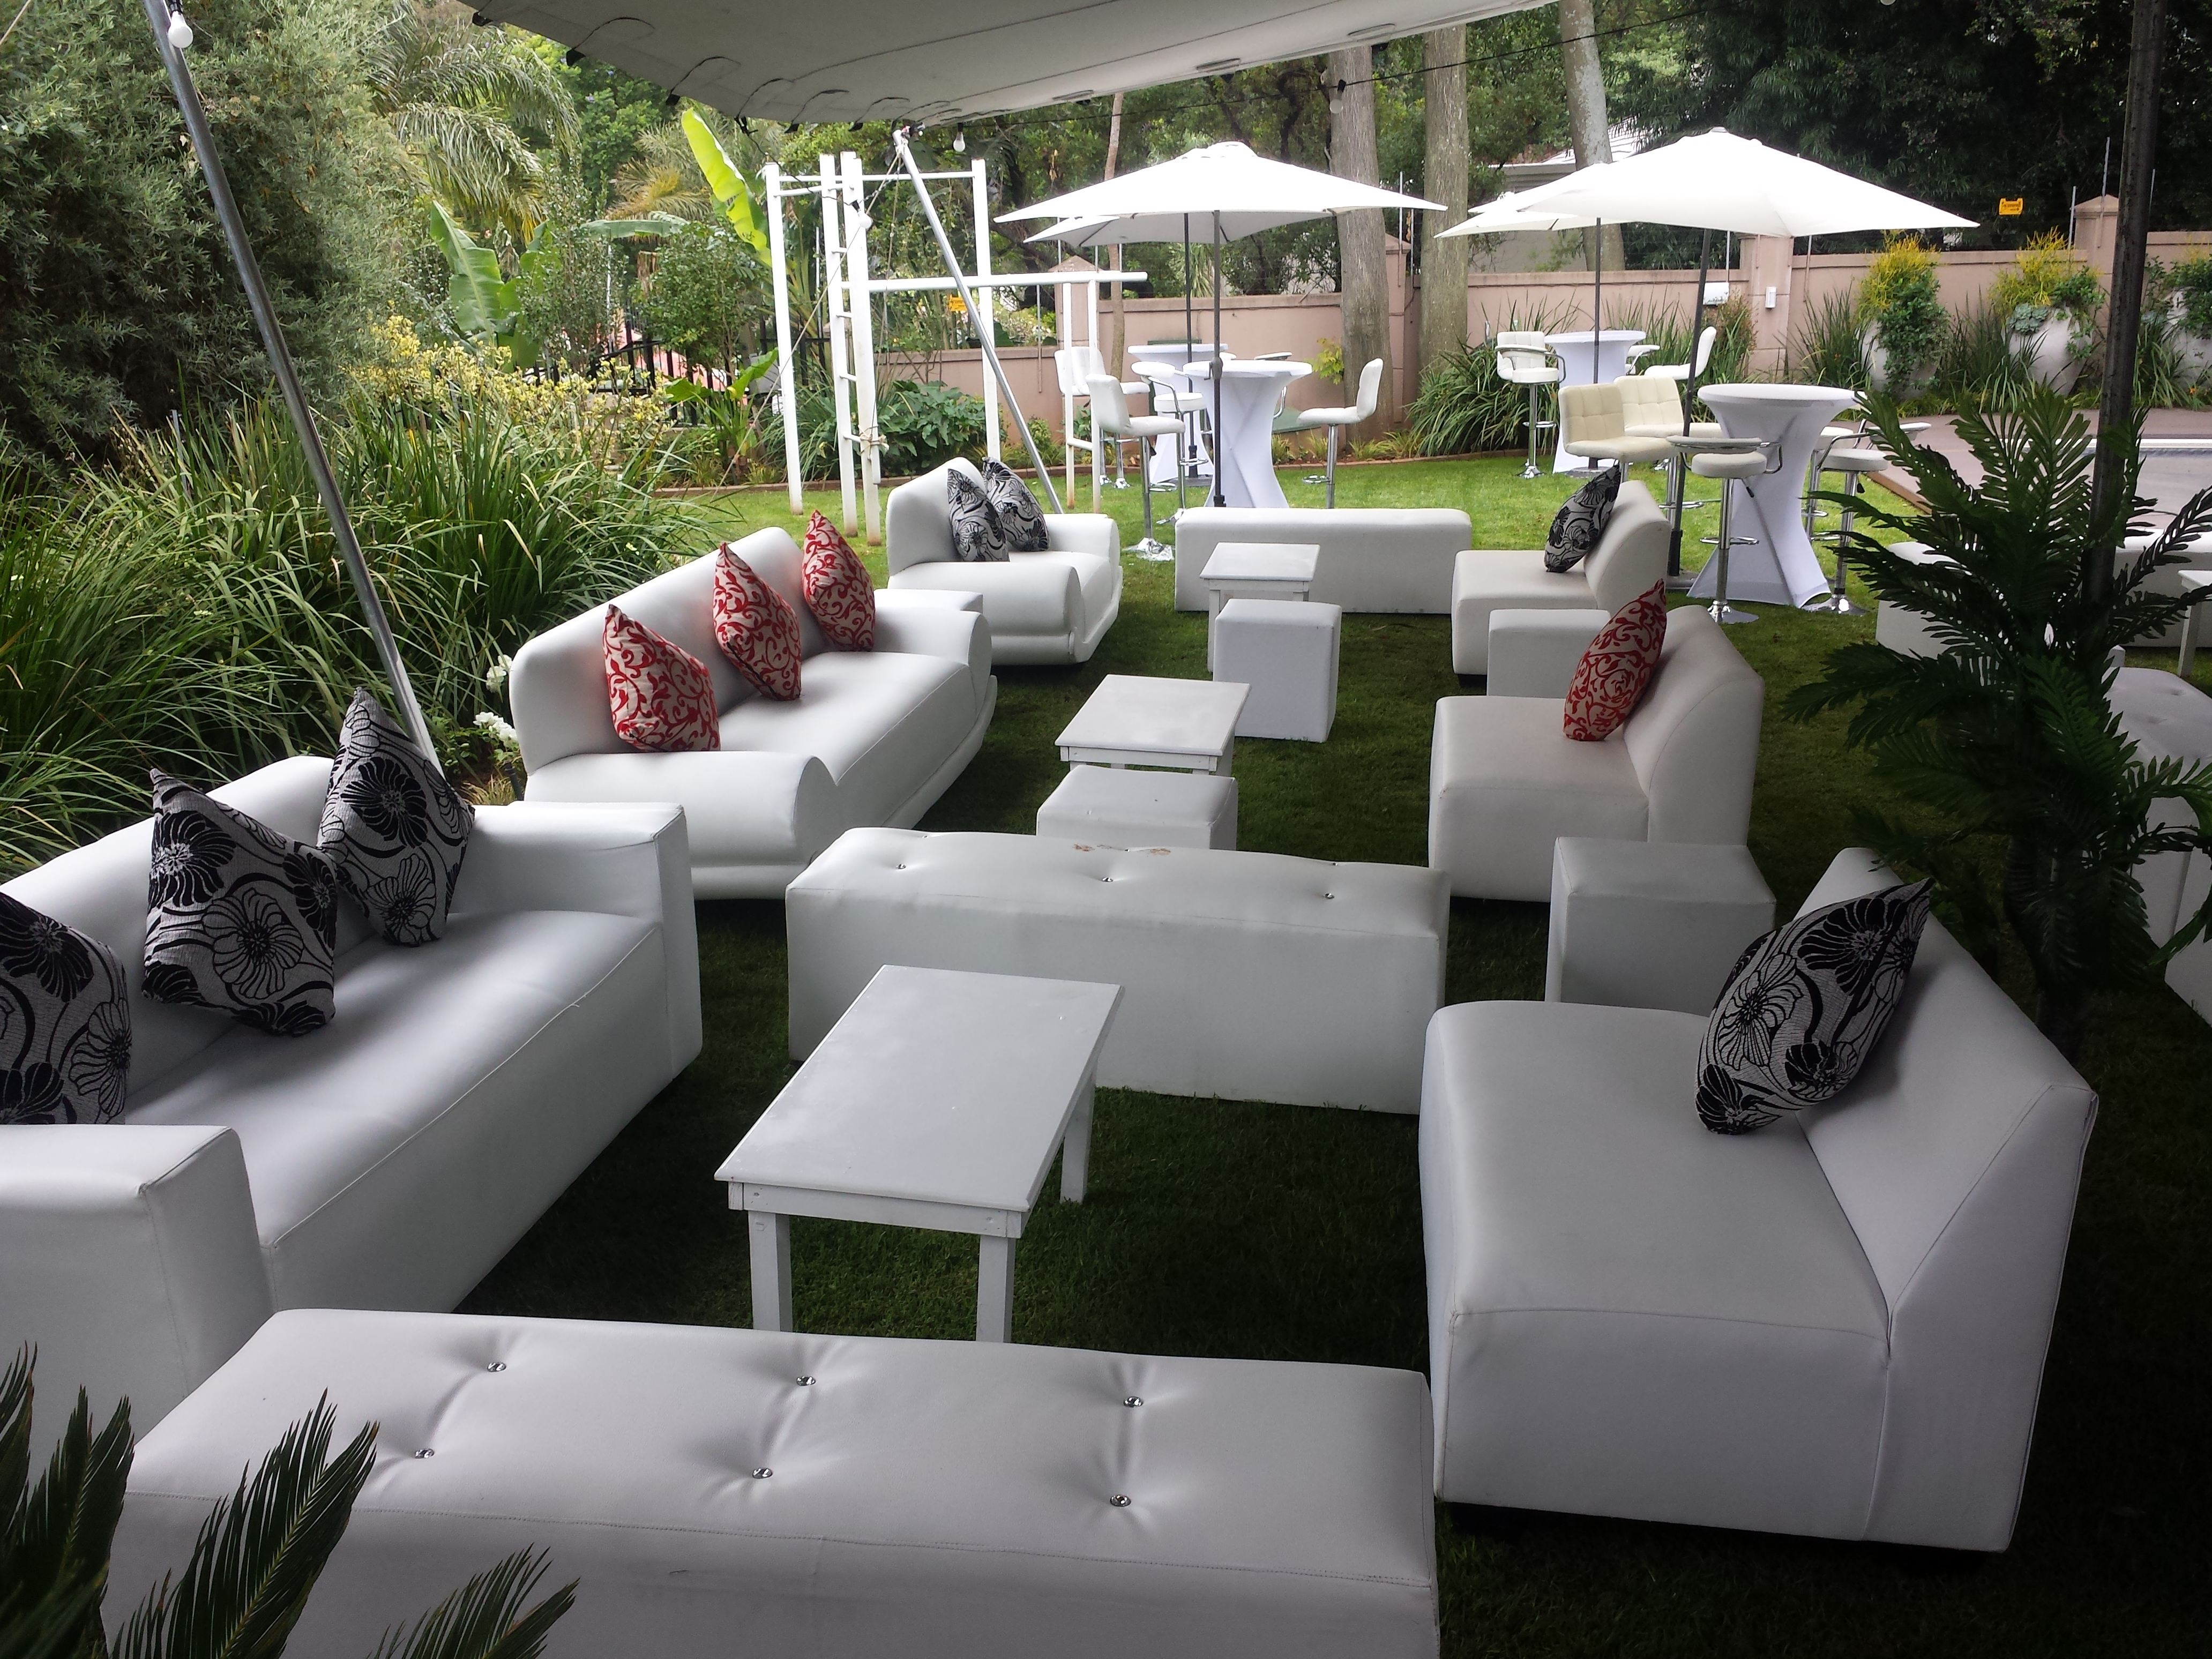 Event Hire Services: Professional Event Hire Services In JHB